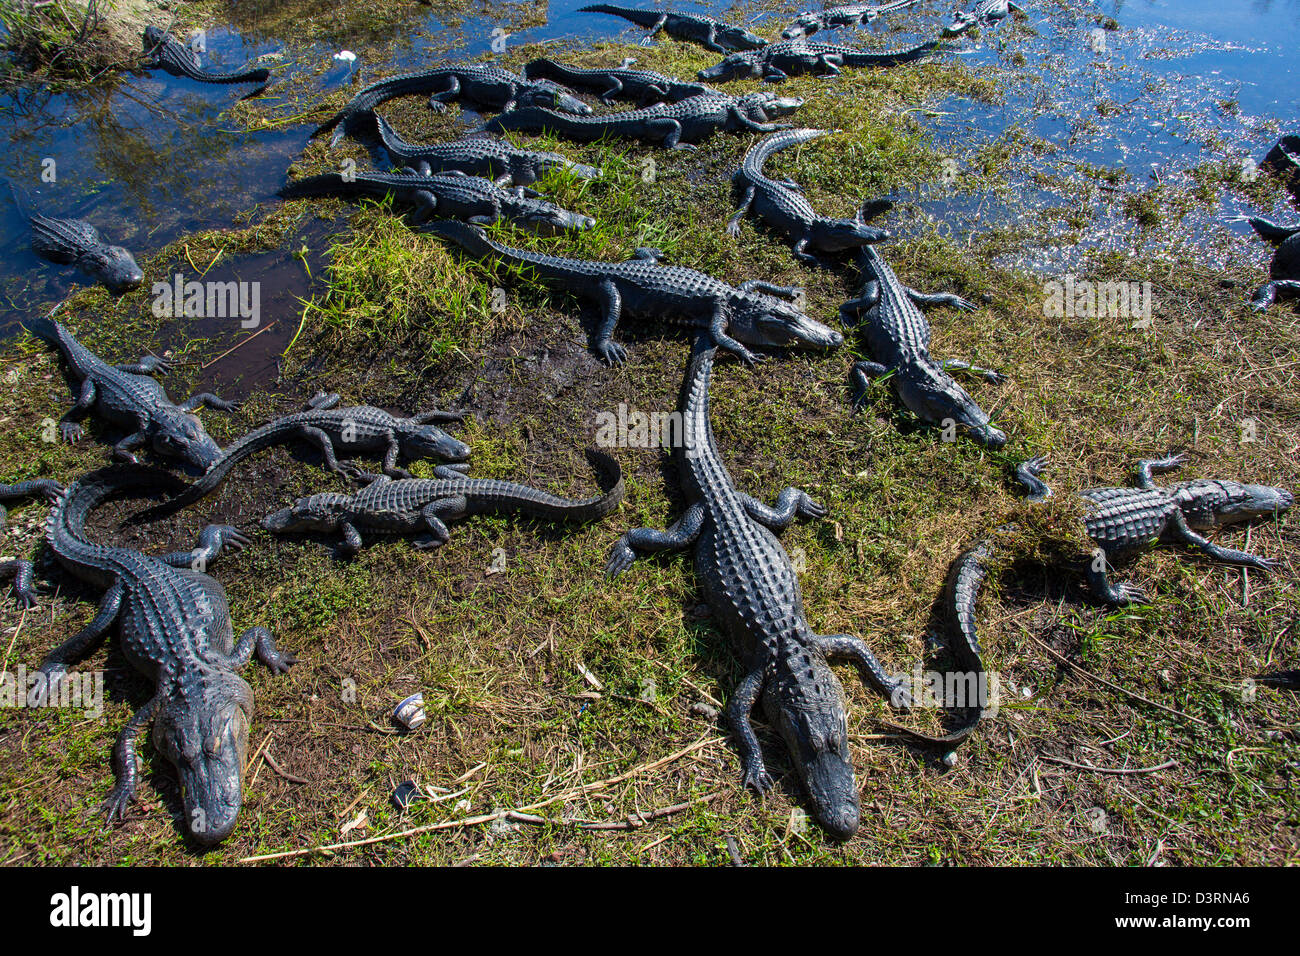 Alligators along the Anhinga Trail at the Royal Palm Visitor Center in Everglades National Park Florida - Stock Image